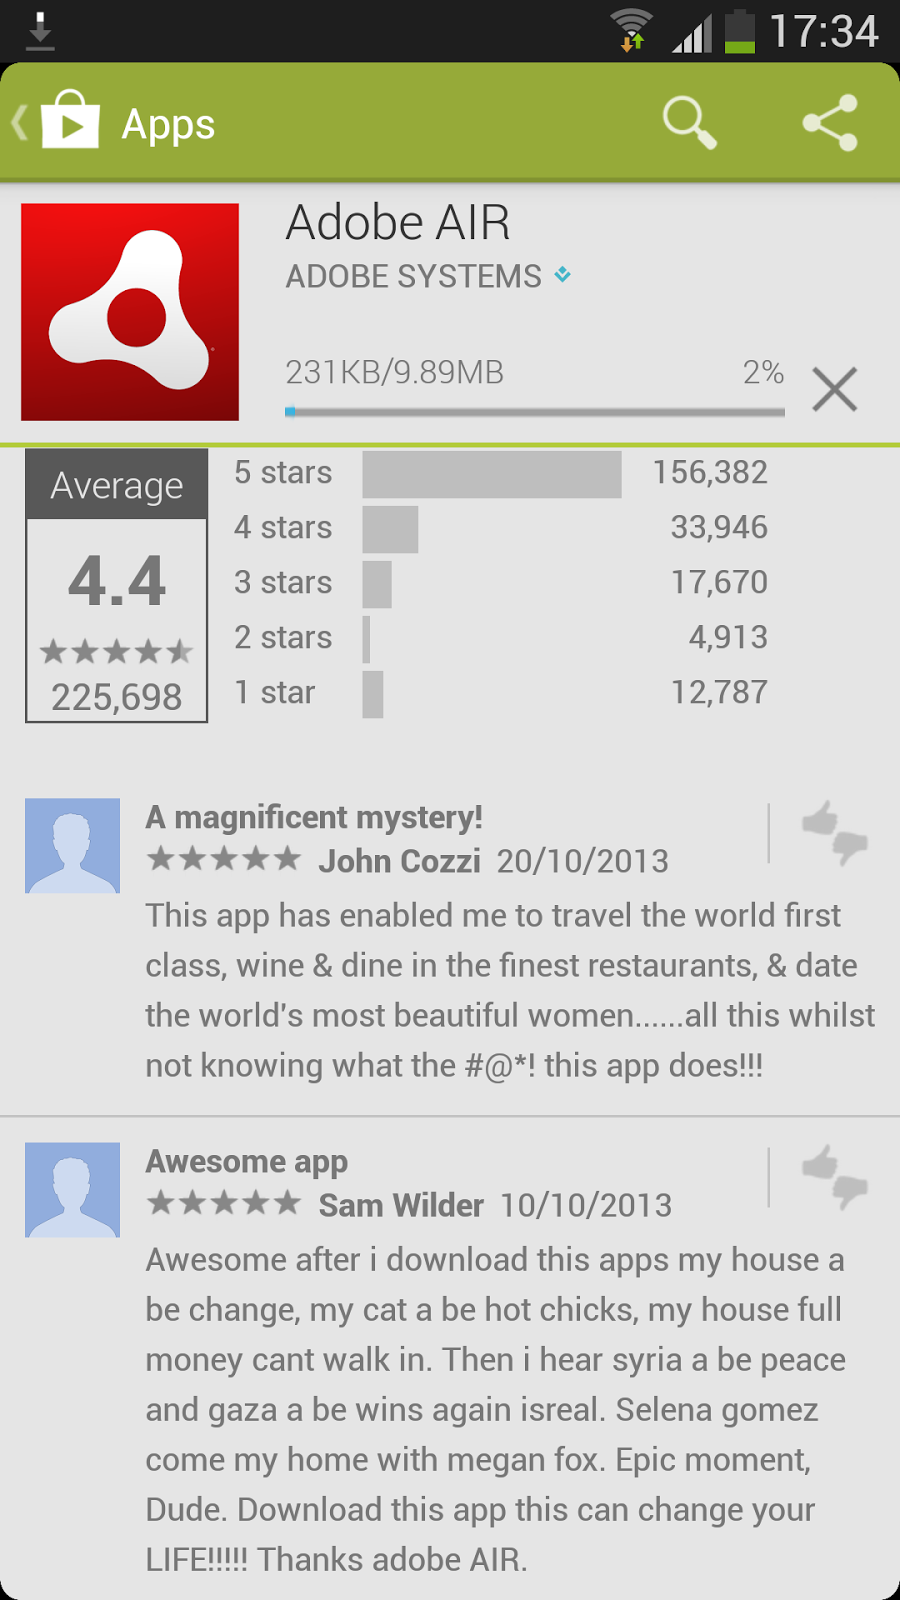 adobe air app review